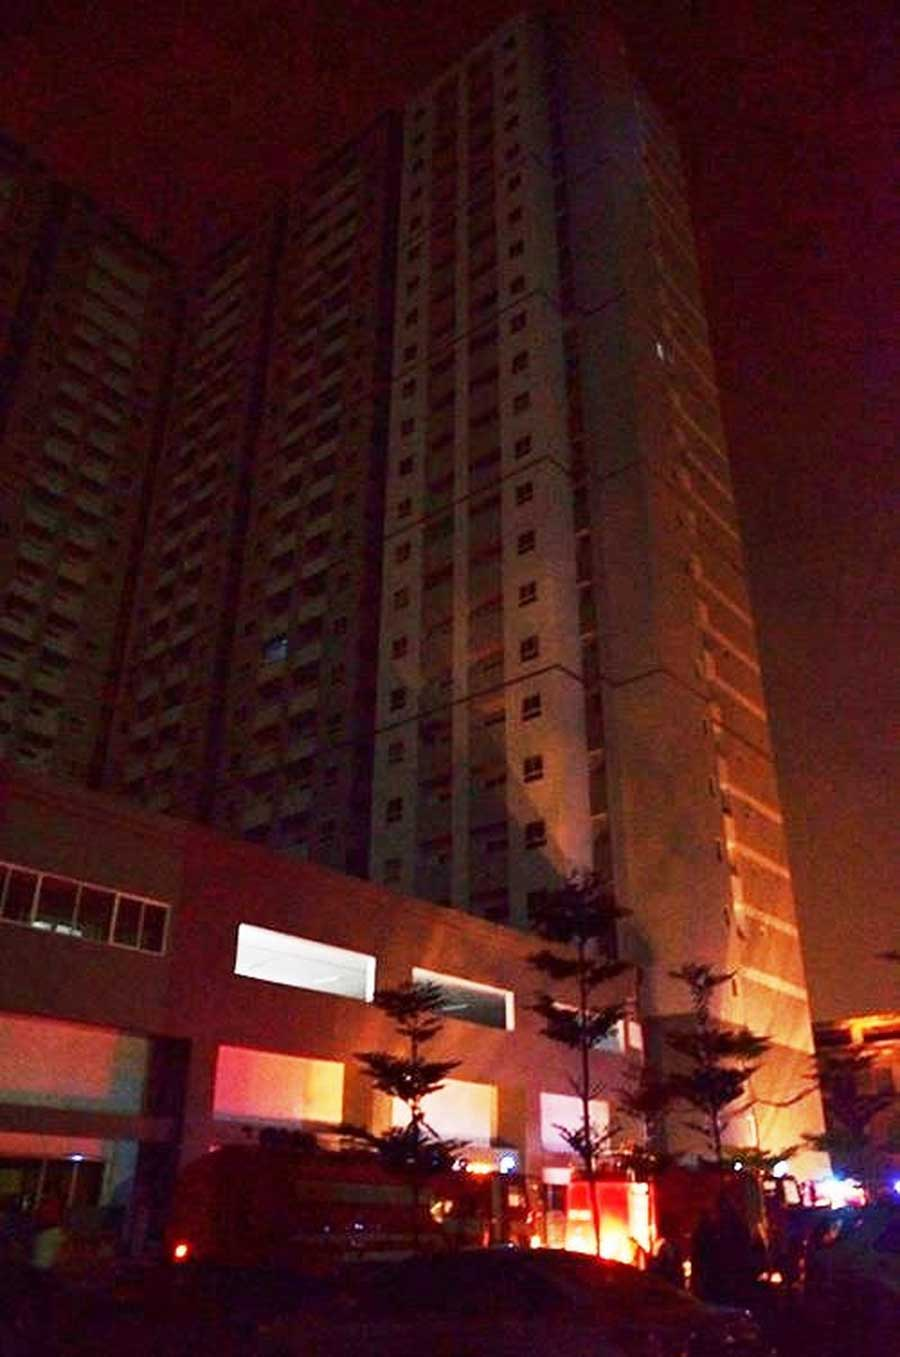 Apartment management does not guarantee fire